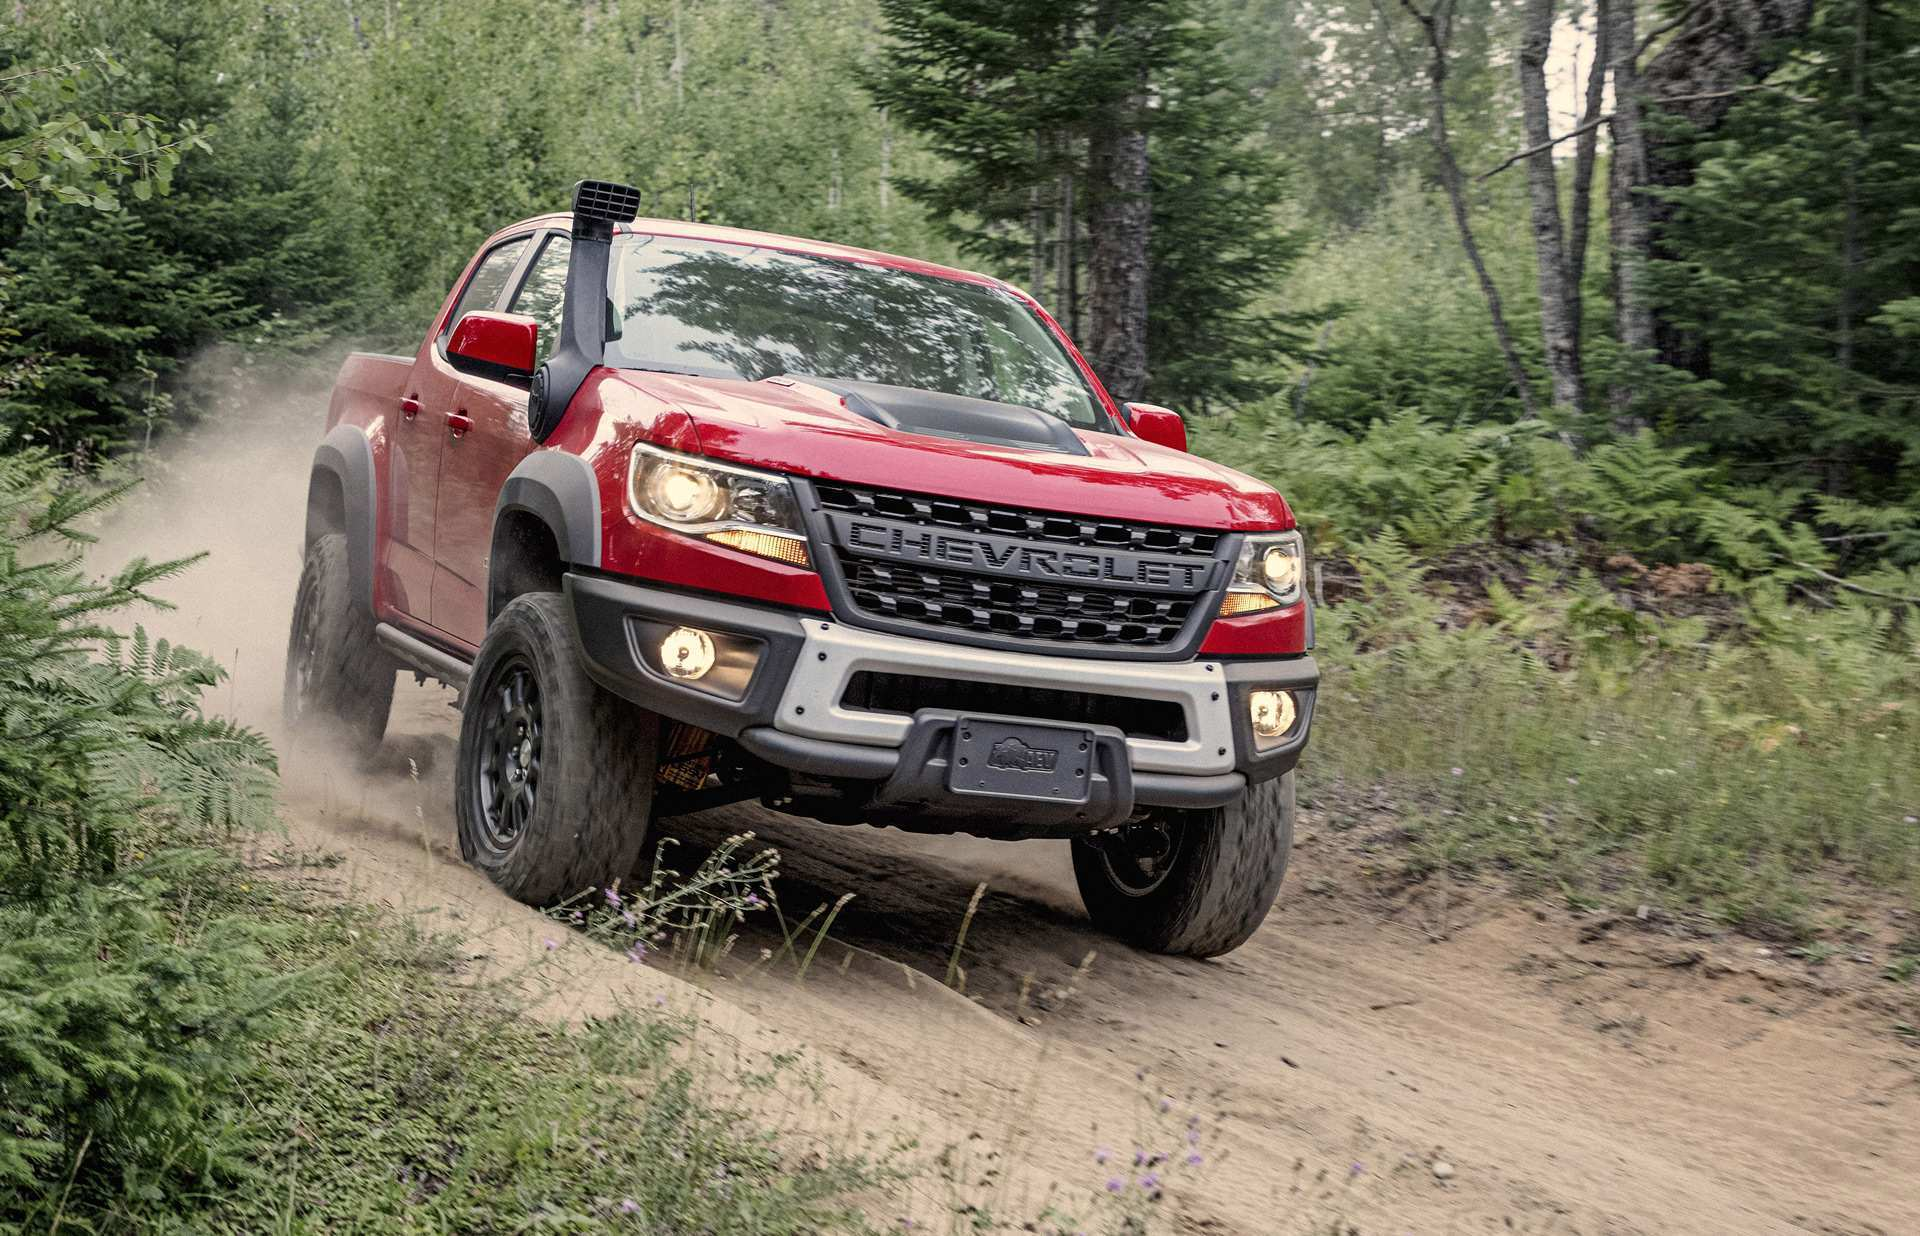 89 Great The Chevrolet 2019 Zr2 New Concept Spy Shoot with The Chevrolet 2019 Zr2 New Concept